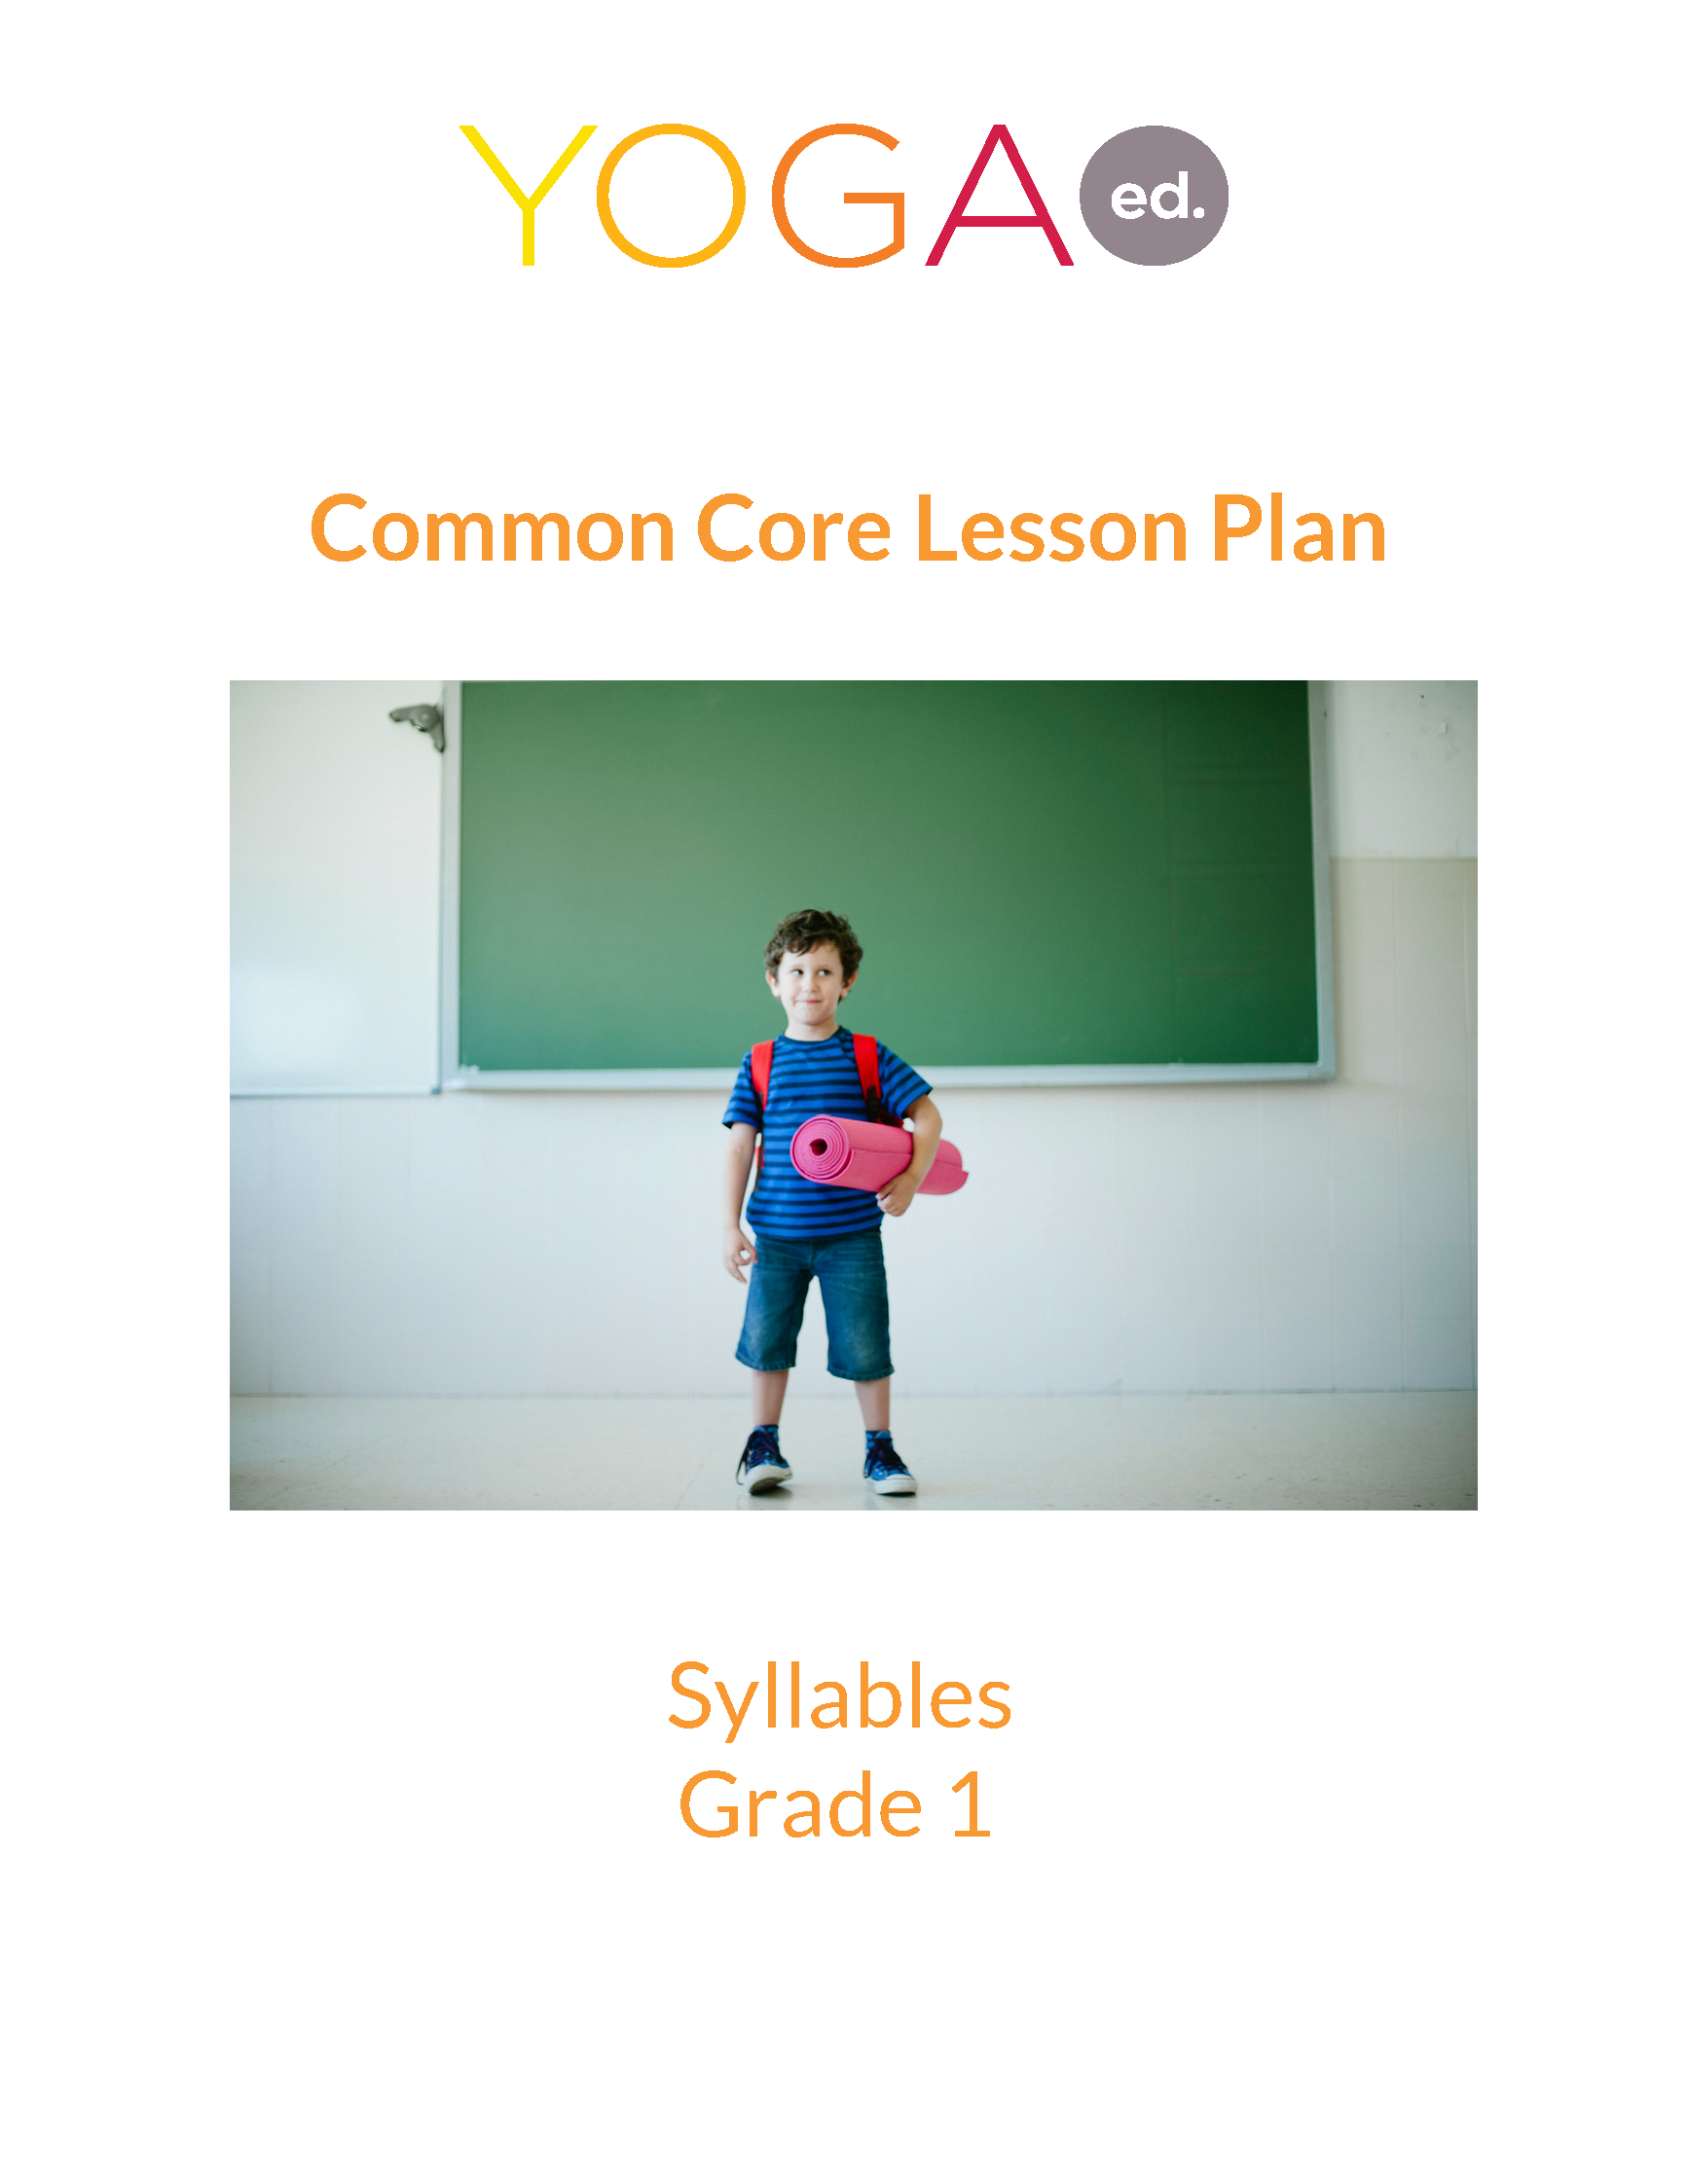 Preview of your lesson plan.